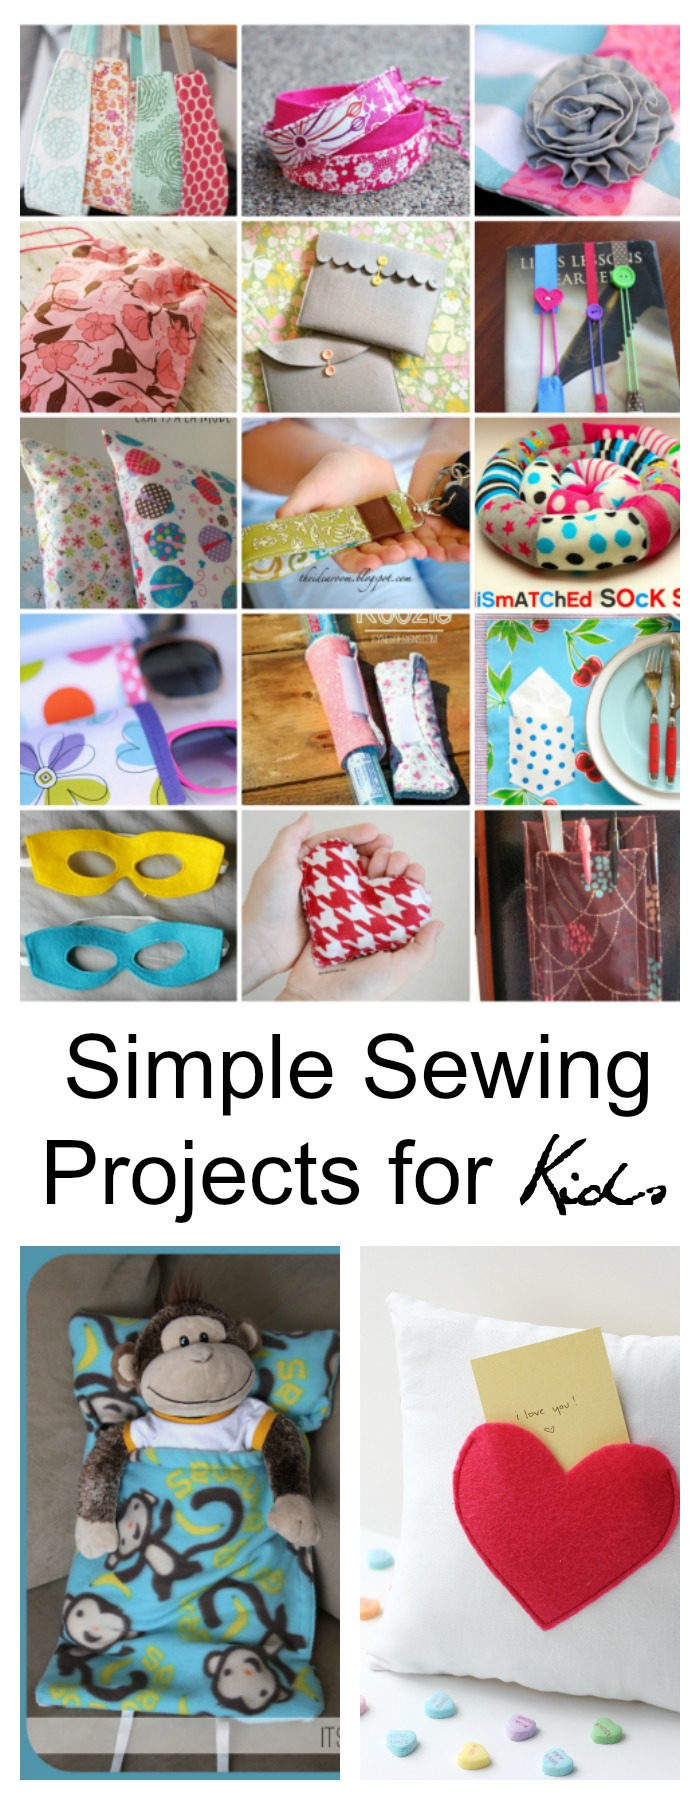 Simple-Sewing-Projects-Kids-Pin